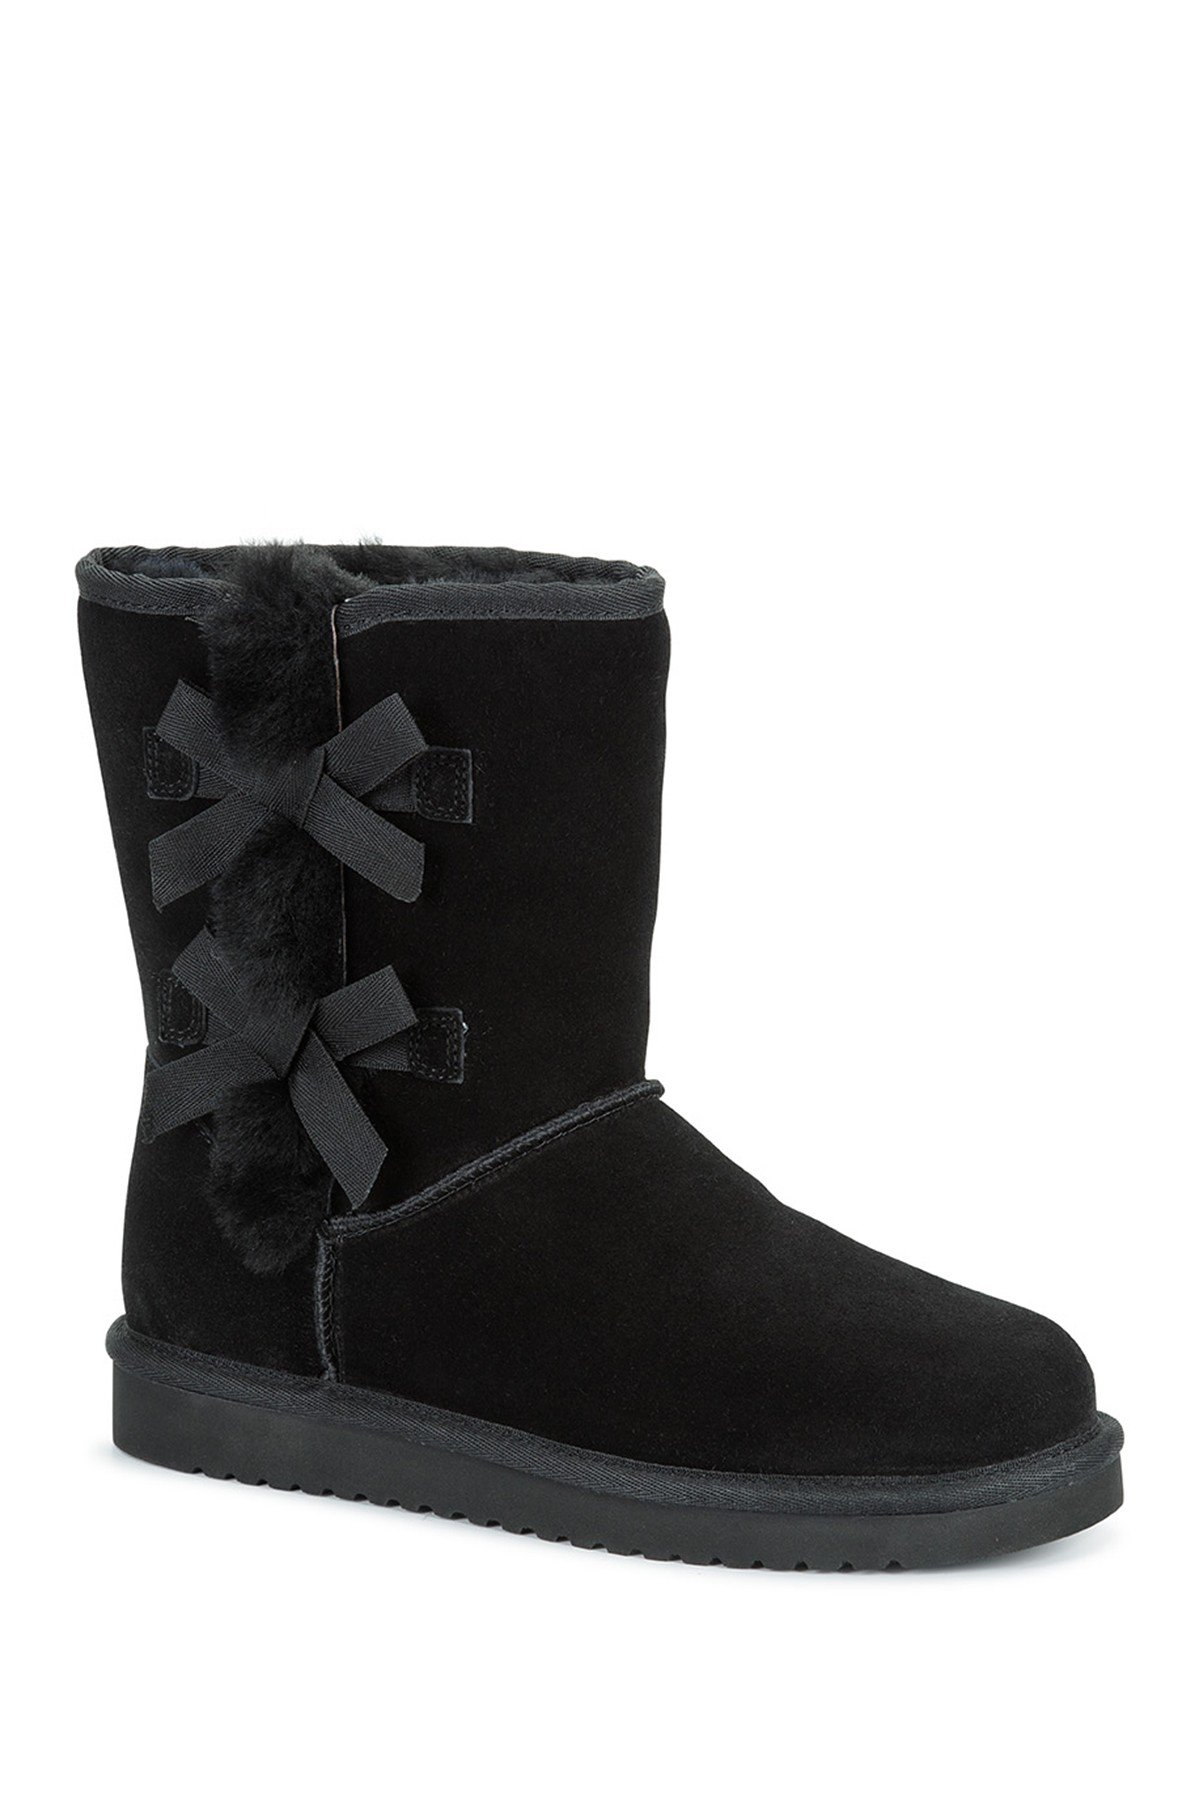 women winter boots koolaburra by ugg - victoria short genuine sheepskin u0026 faux fur boot ulacmga